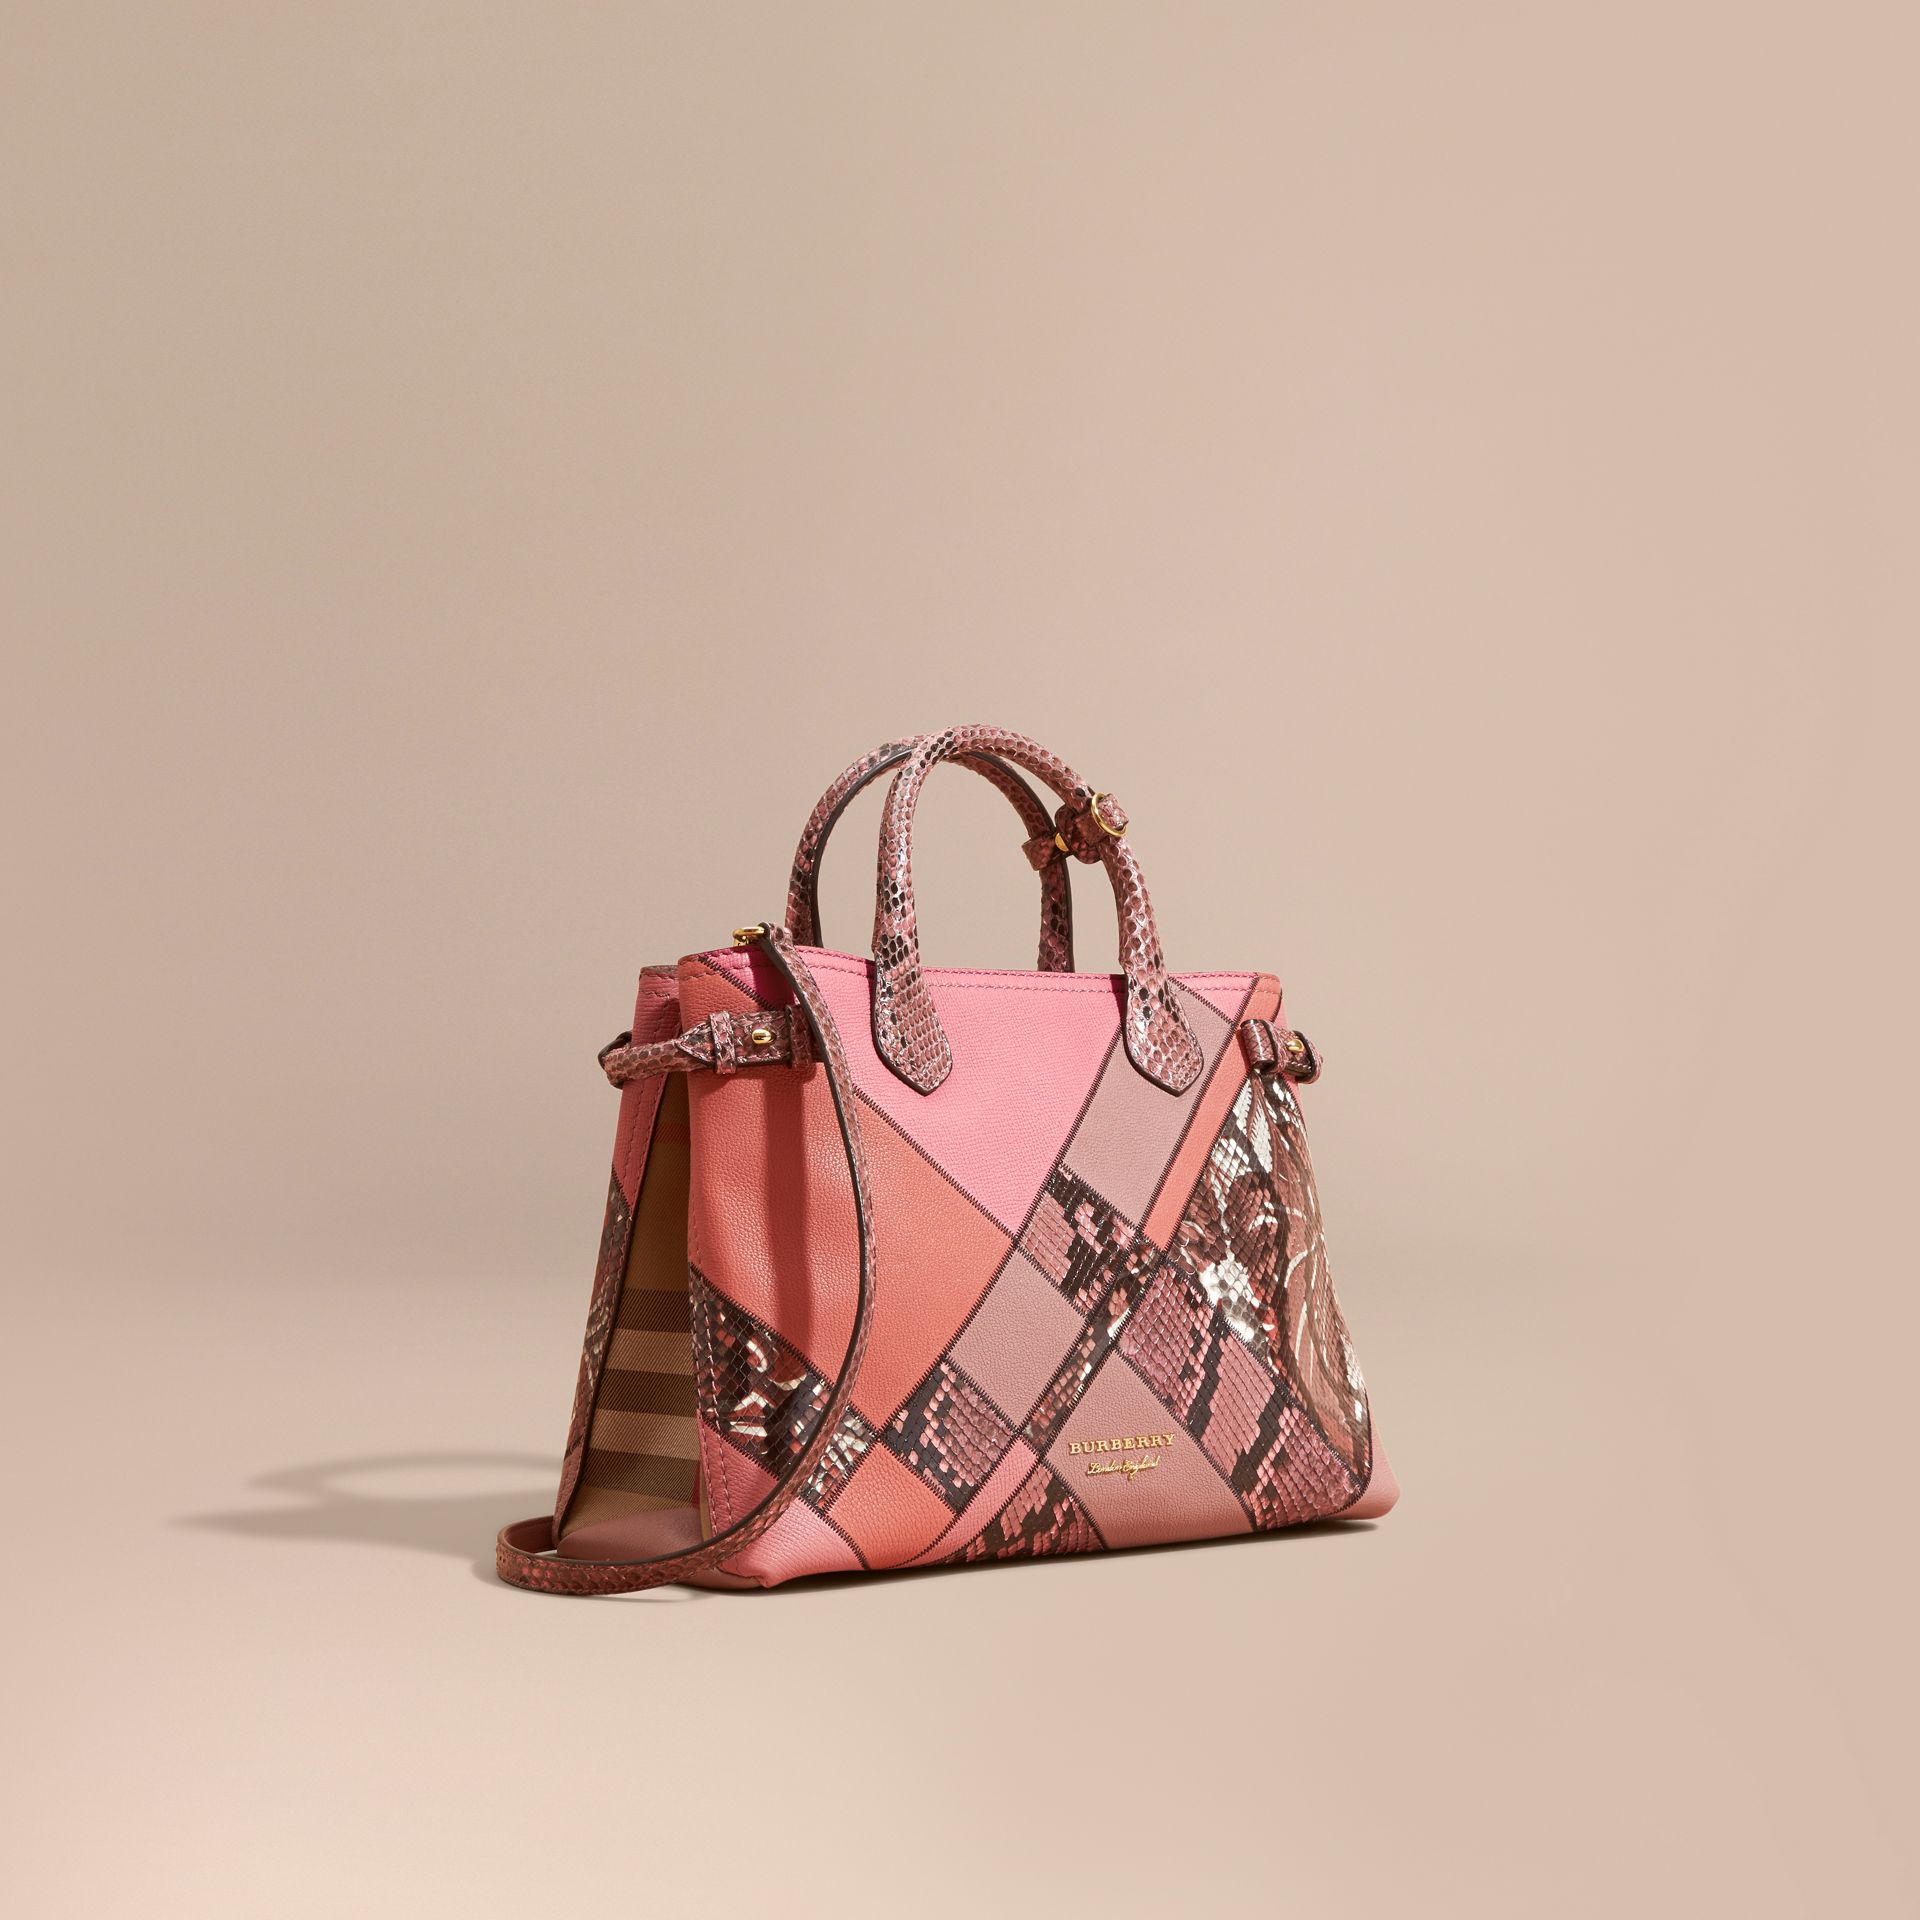 Sac The Banner medium en cuir et python façon patchwork (Rose Cendré) - Femme | Burberry - photo de la galerie 1